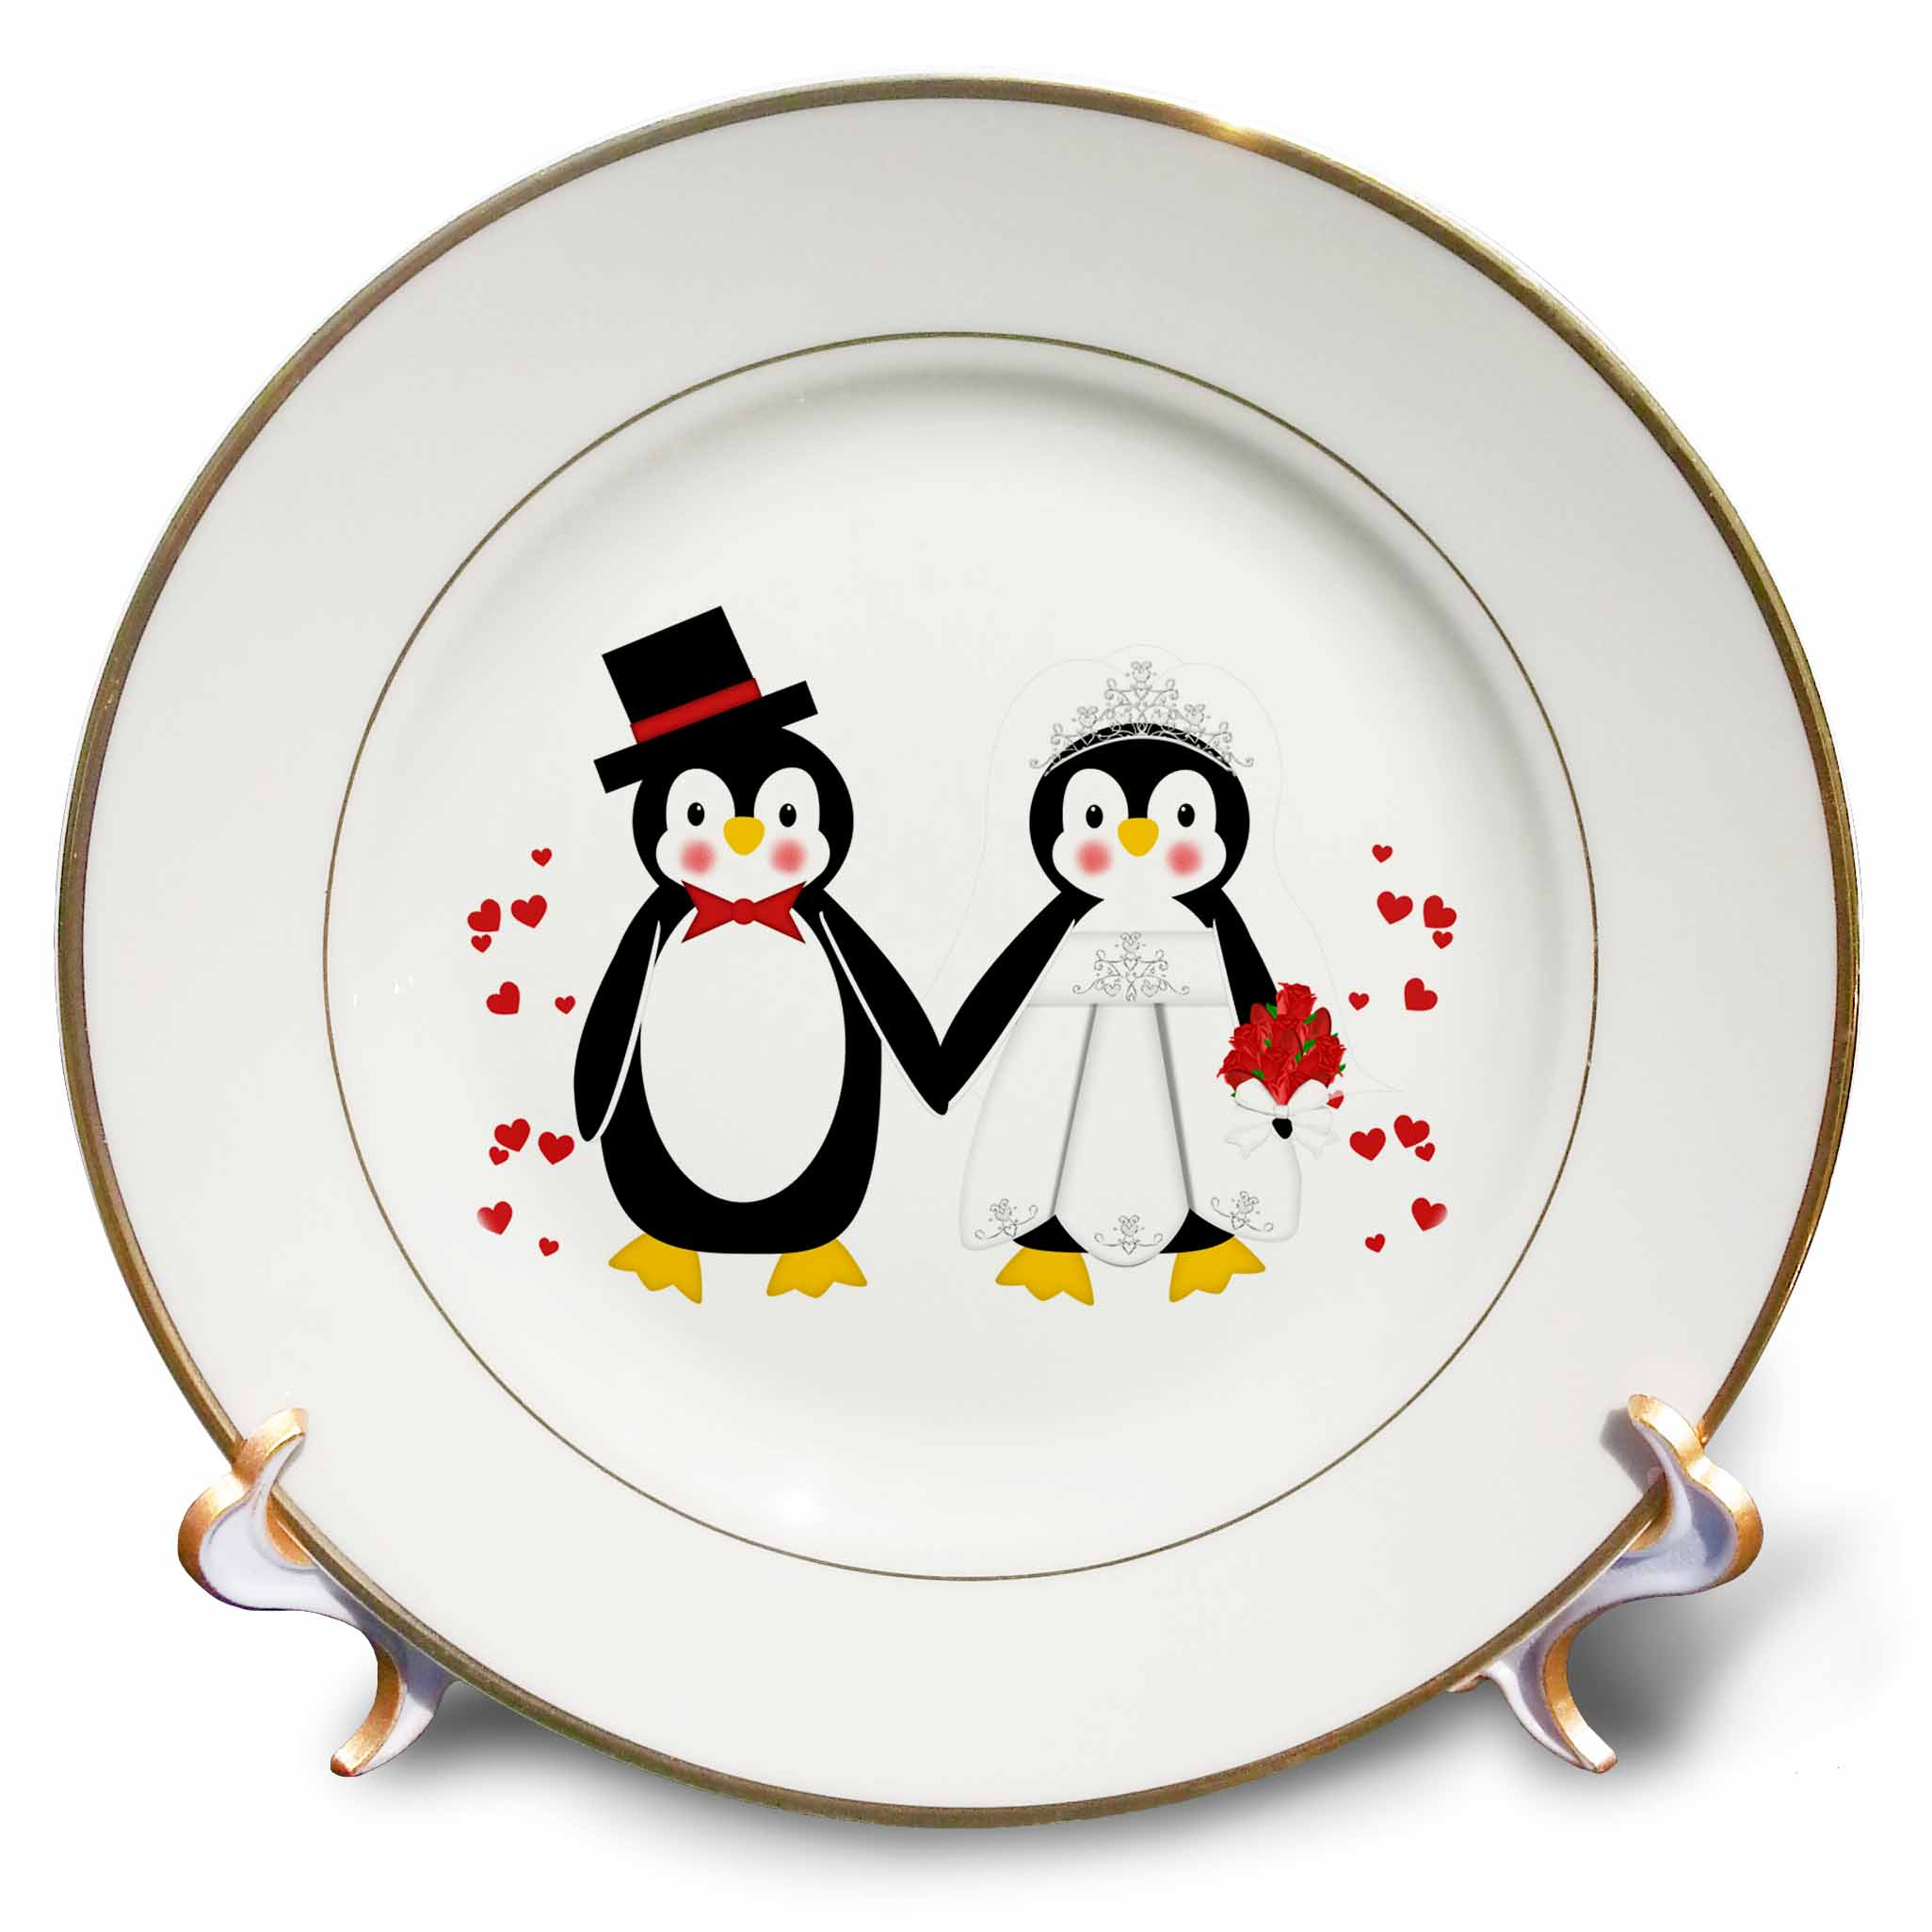 3dRose Cute Red Hearts Penguin Bride and Groom Wedding Couple, Porcelain Plate, 8-inch